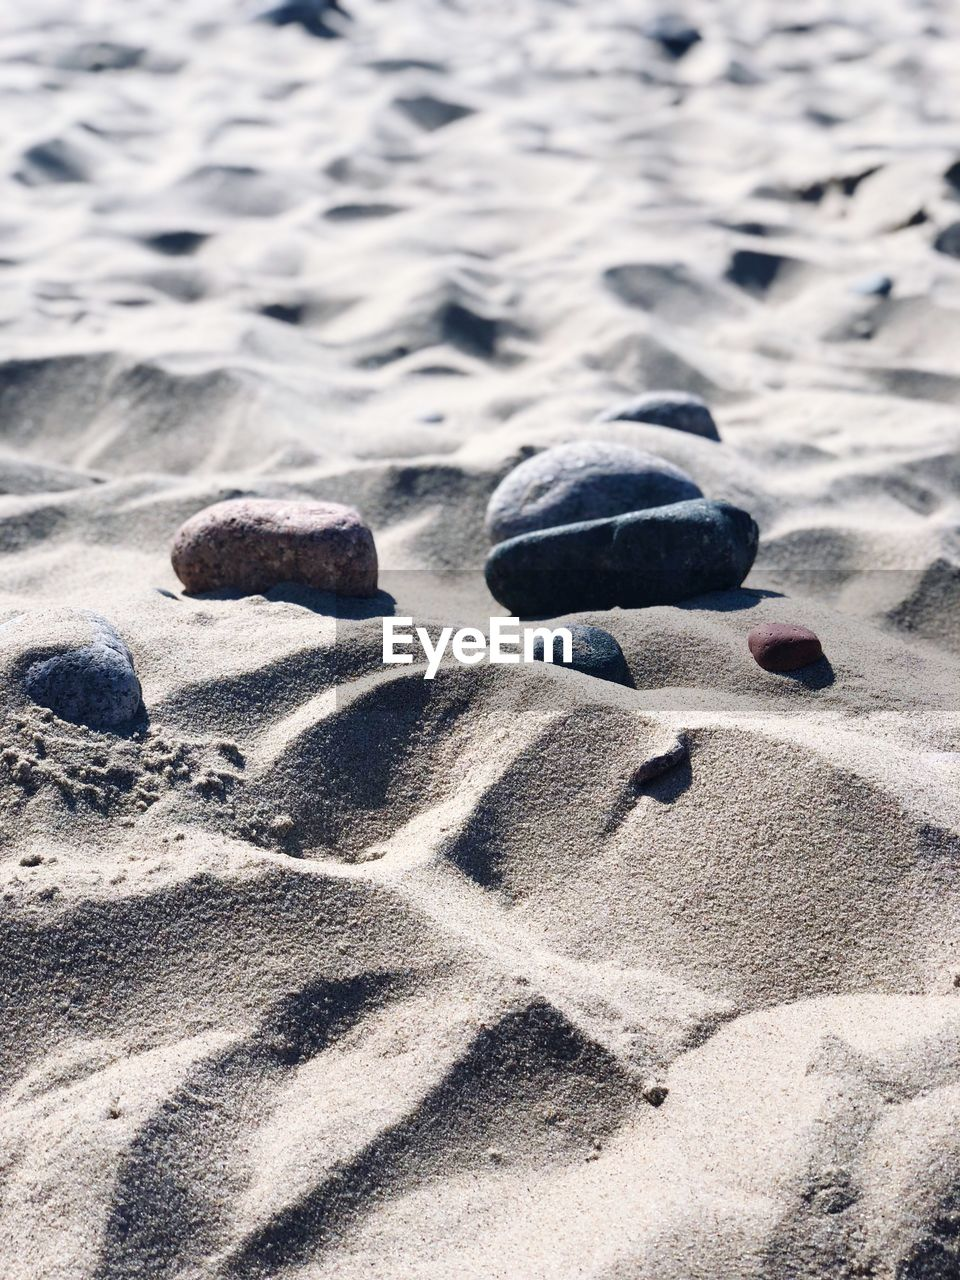 sand, beach, land, nature, day, no people, sunlight, water, close-up, solid, sea, rock, beauty in nature, tranquility, outdoors, sport, high angle view, stone - object, focus on foreground, pebble